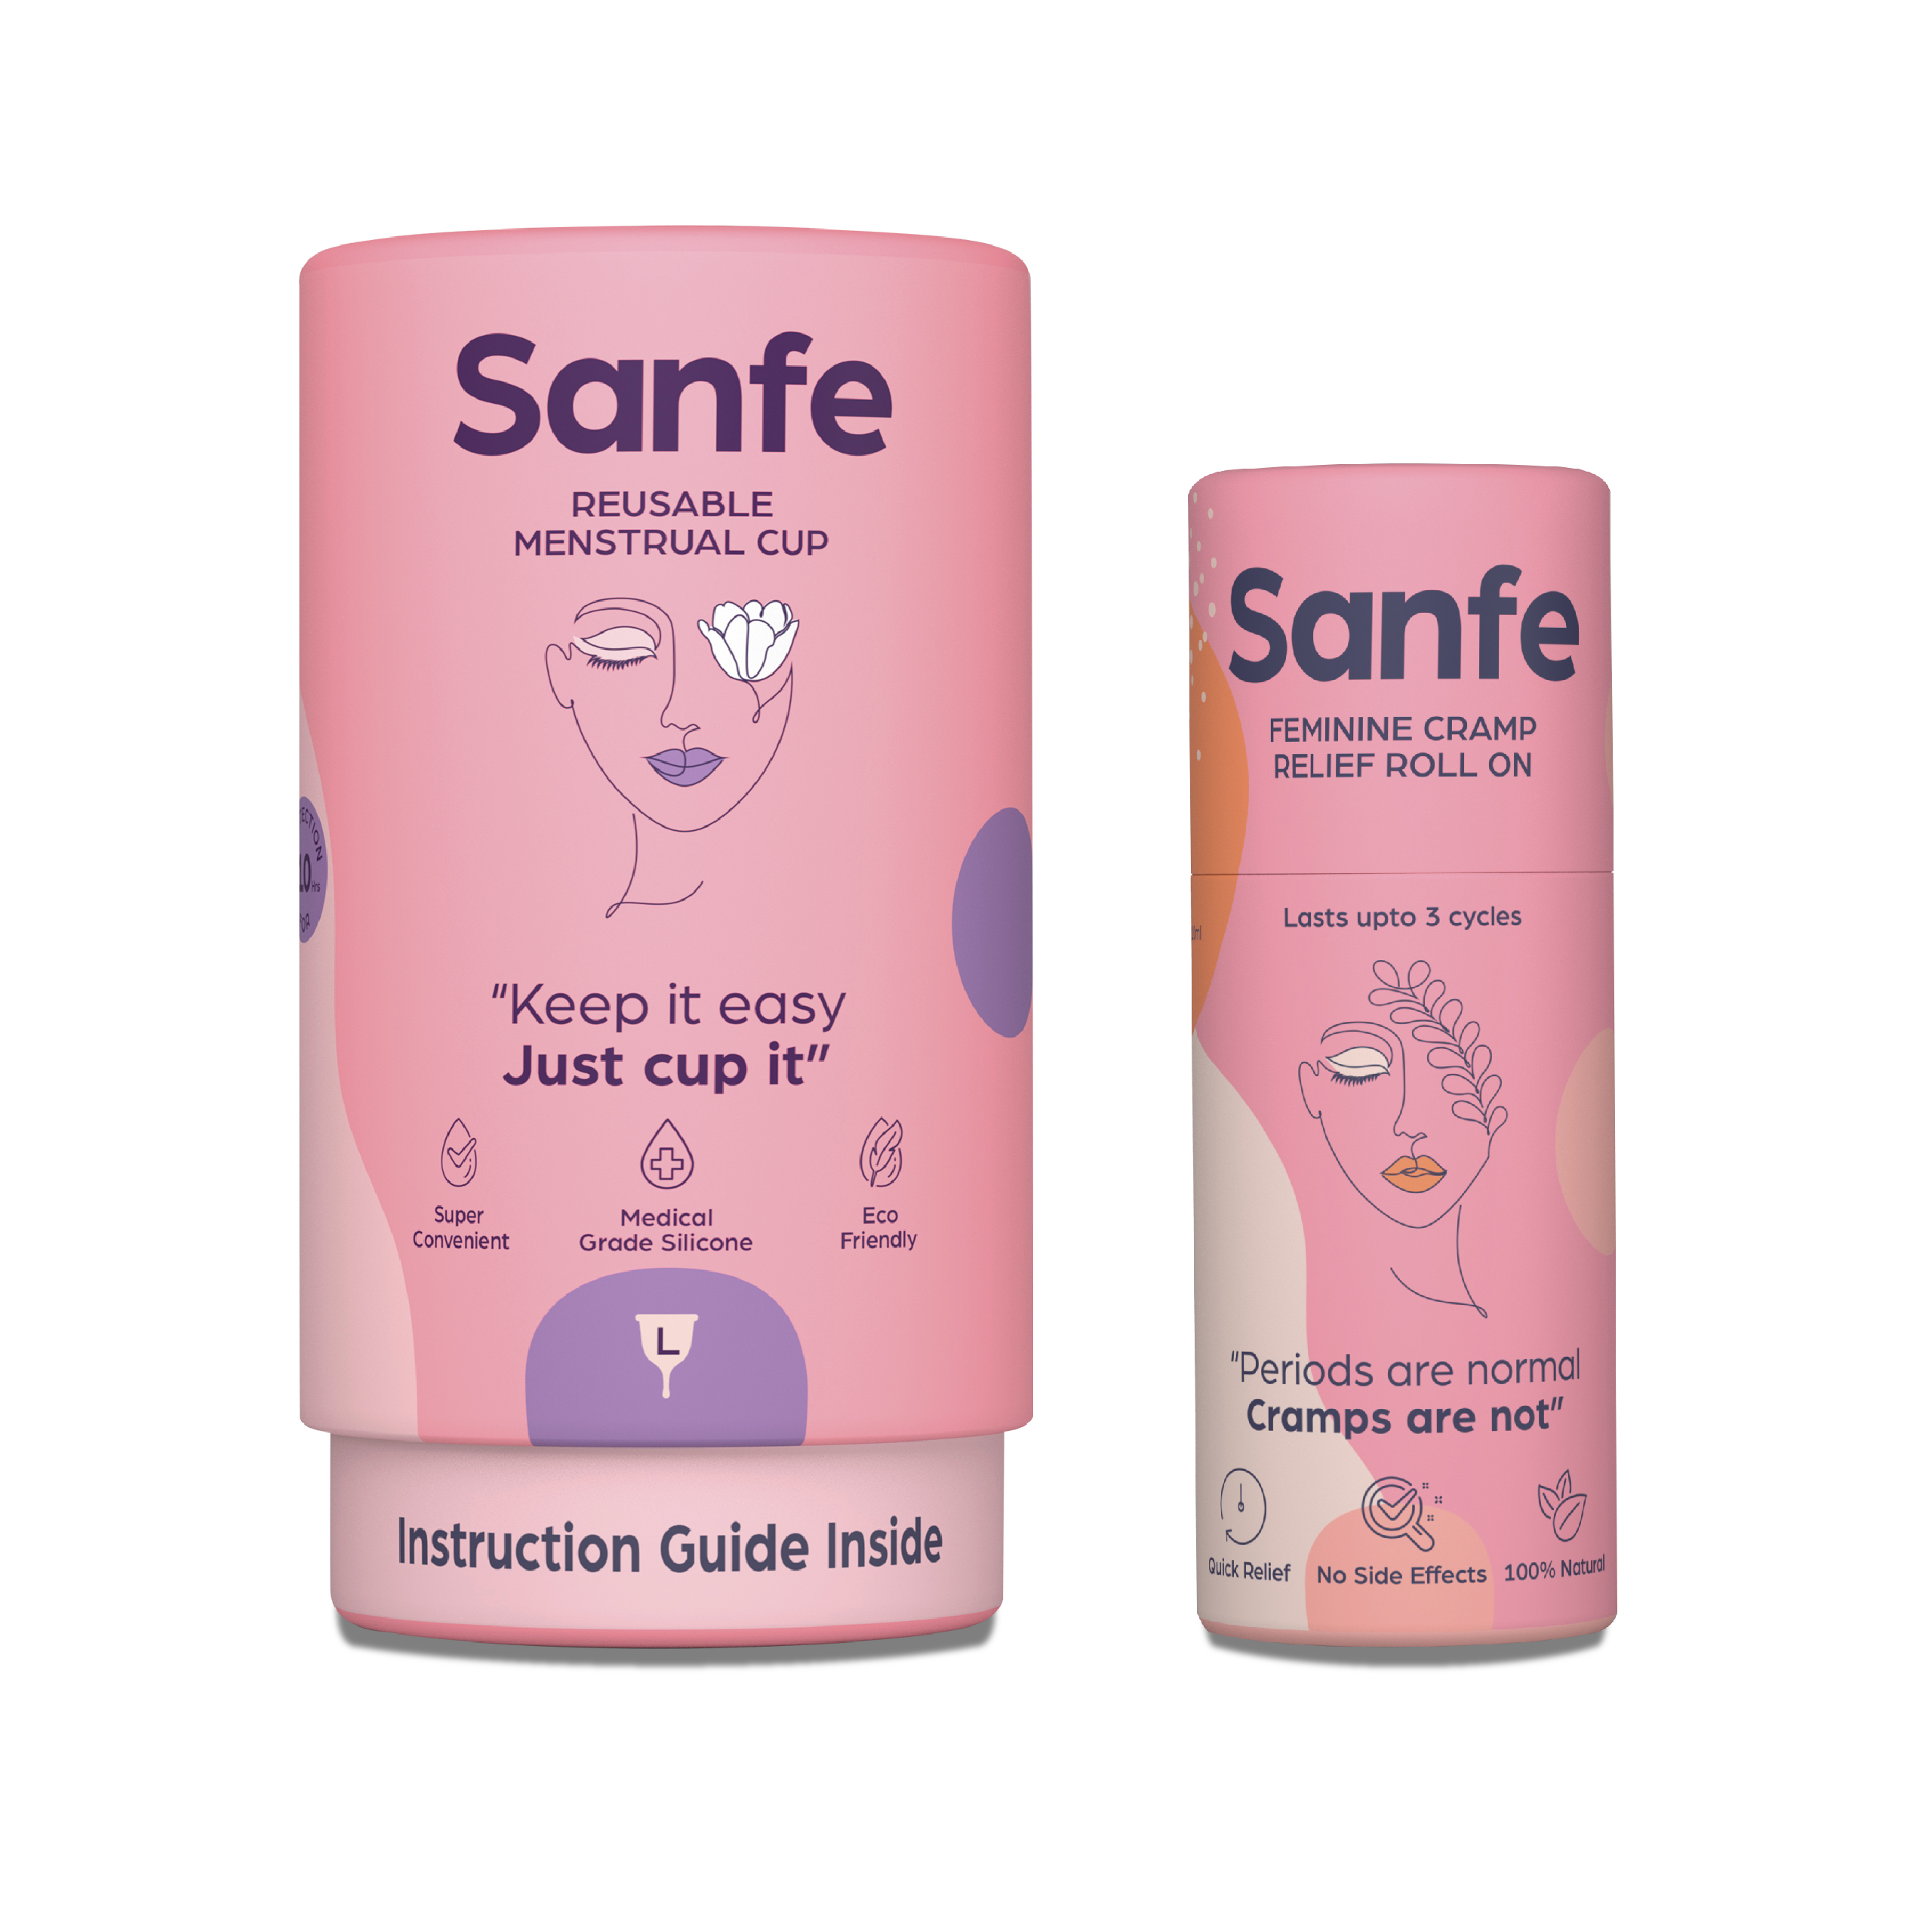 Sanfe Miracle Period Set - Perfect Fit Menstrual Cups Large and Feminine Cramp Relief Roll On - 10ML